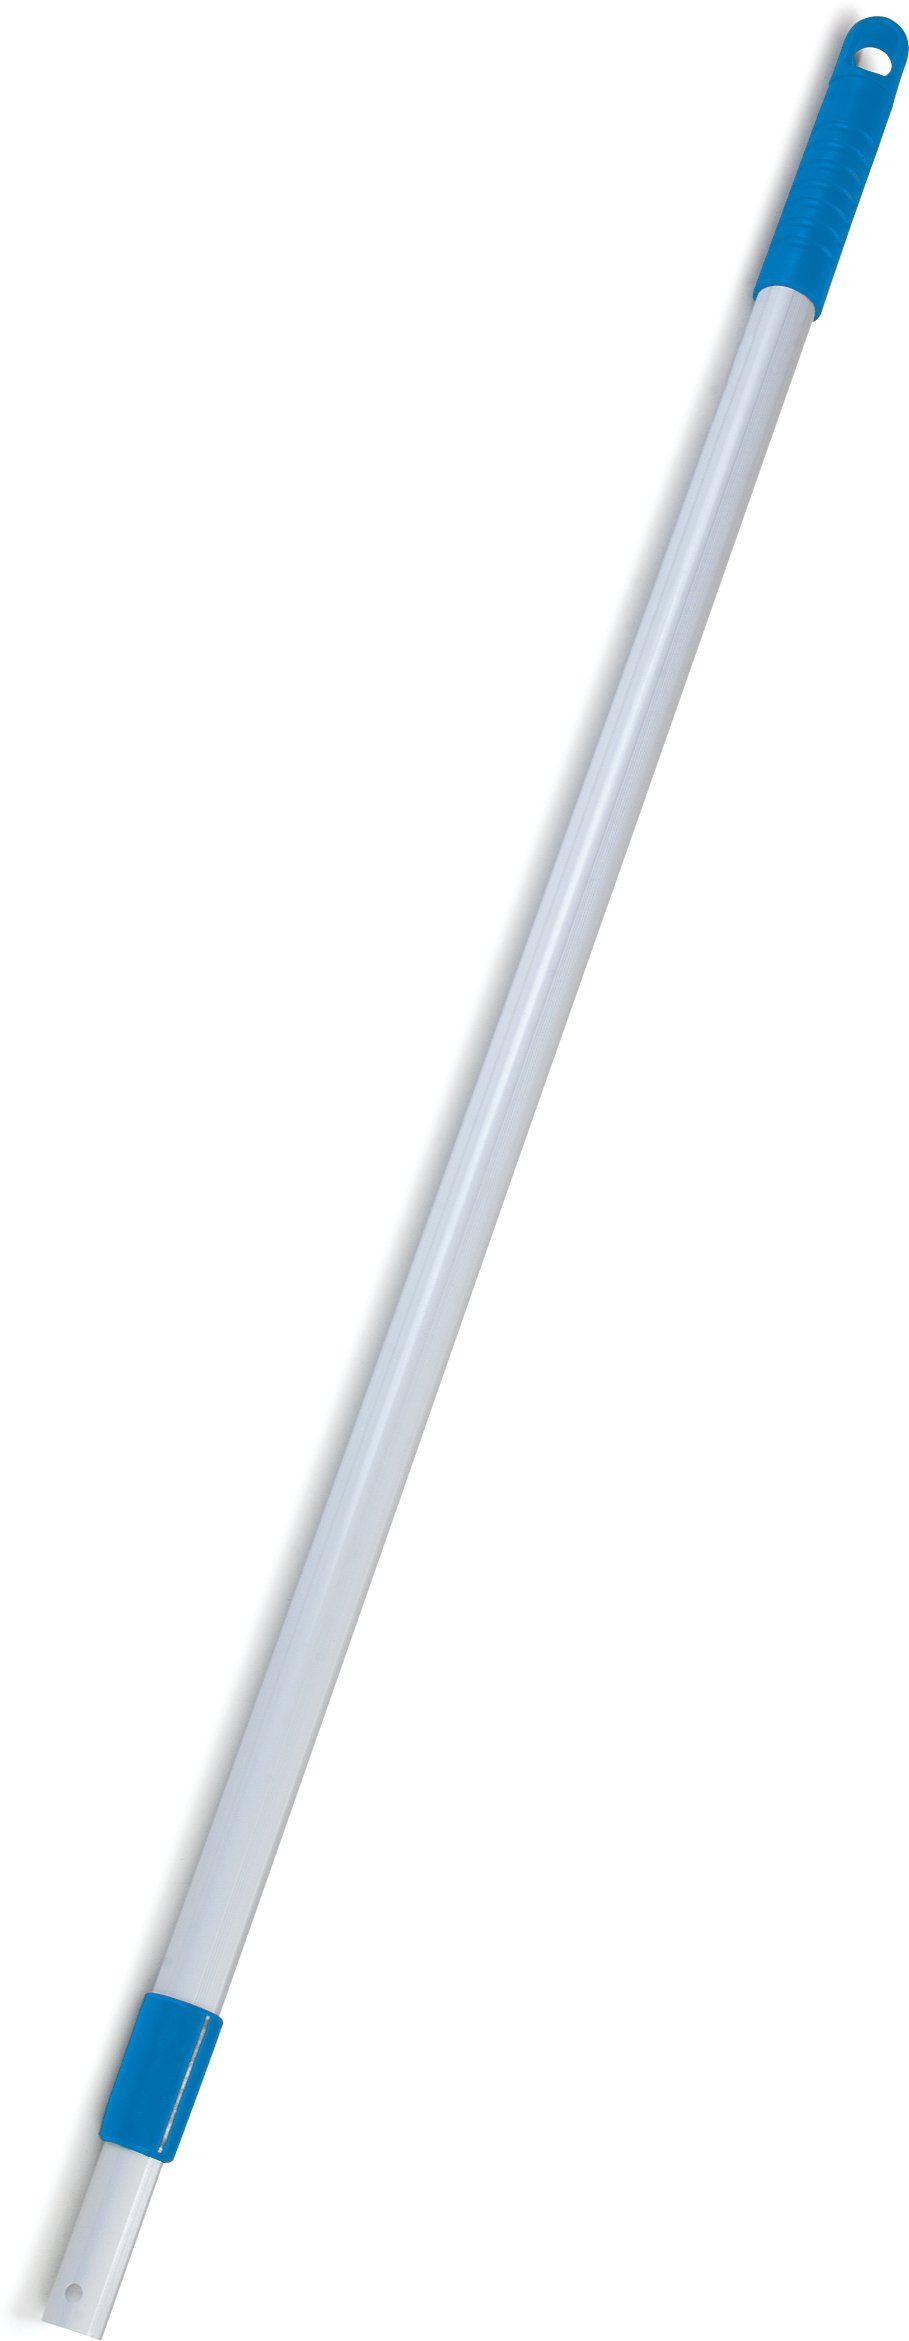 Carlisle 363367000 Aluminum Flat Mop Telescopic Handle, 43'' - 70'' Length